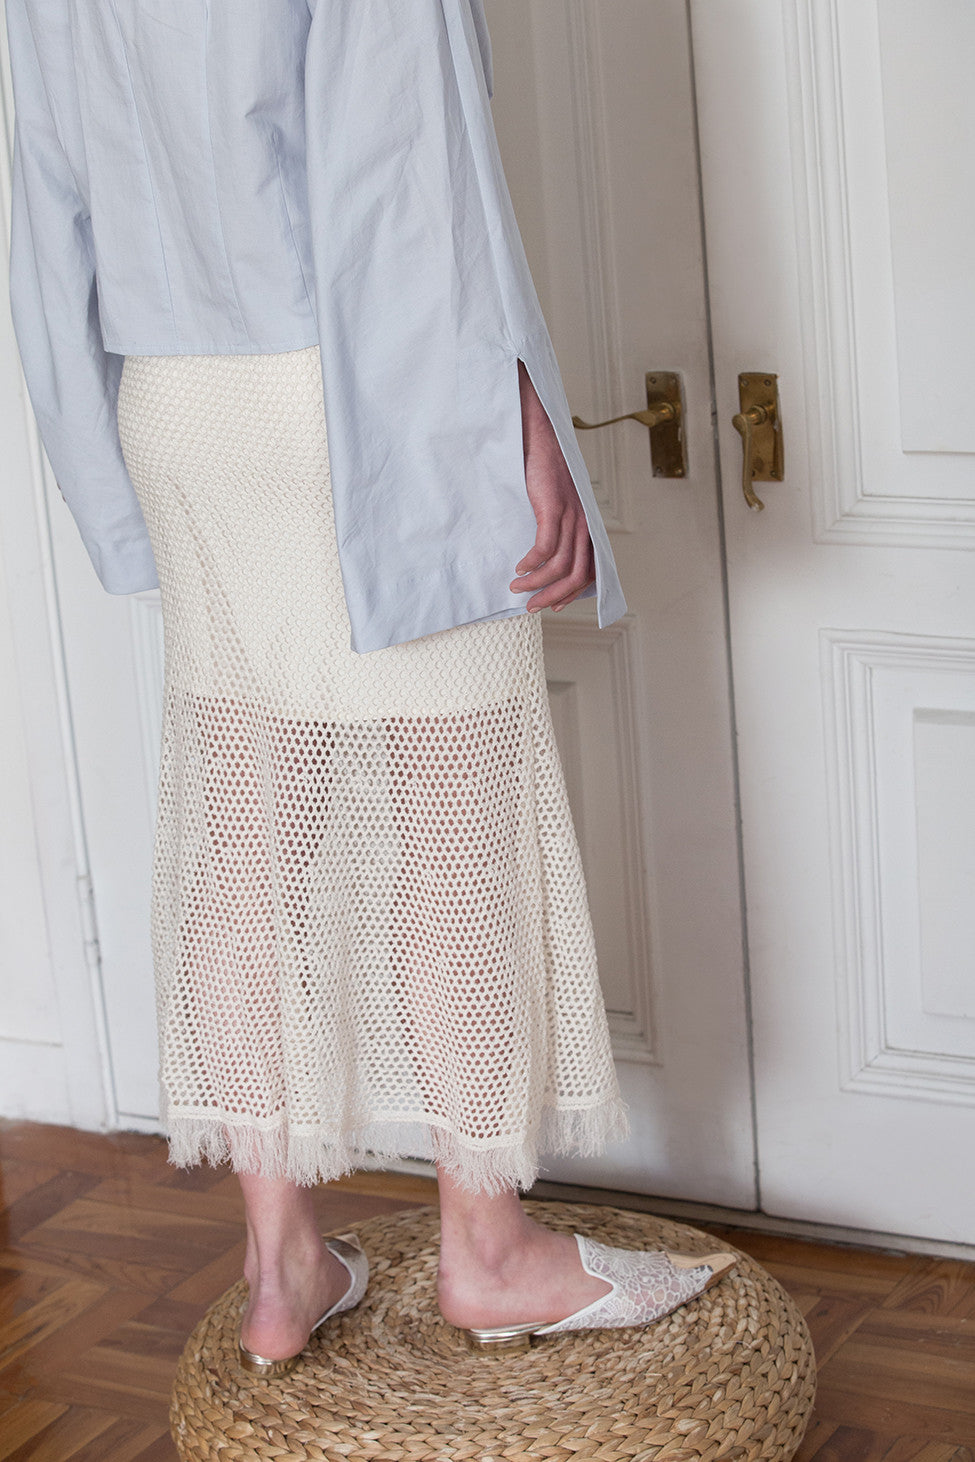 The Veste Skirt in Cream Ivory featuring elasticated waistband with net detailing. Tassel edged. Partial lined.